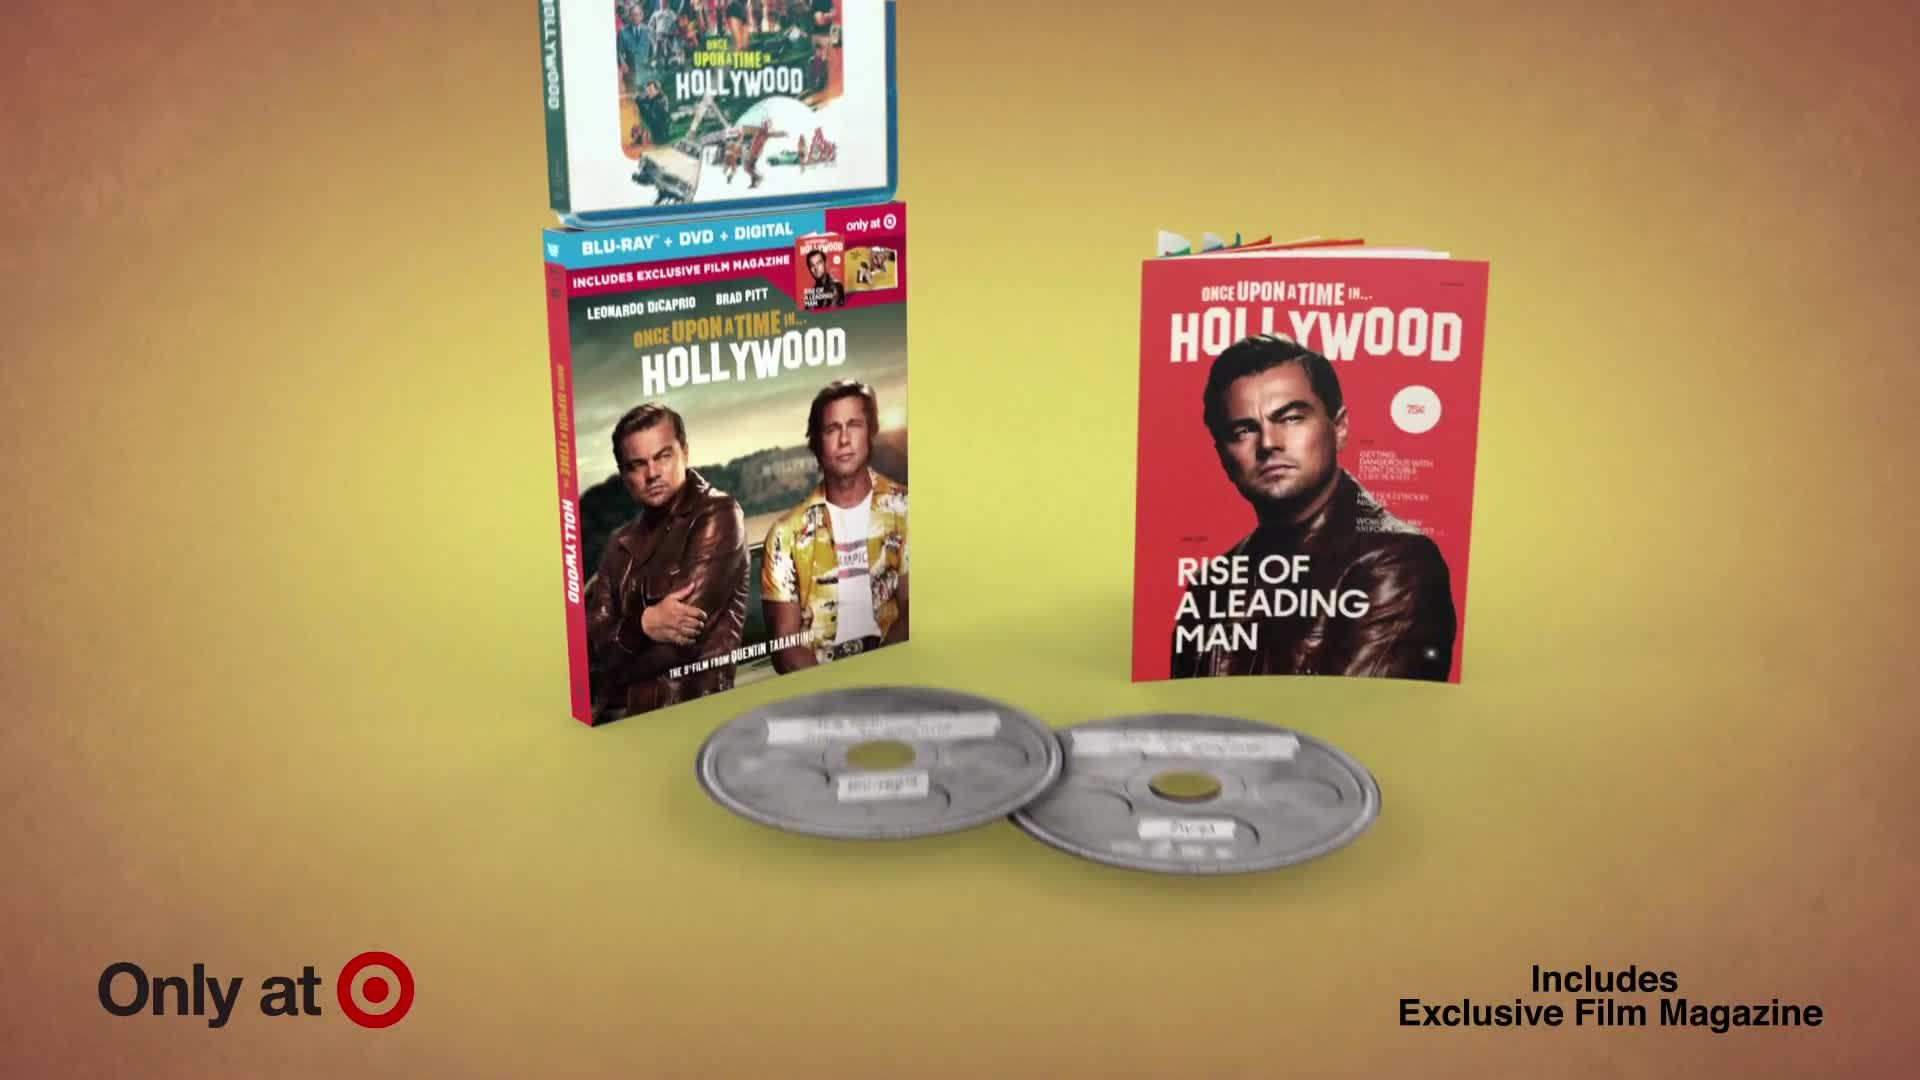 Pre-order Once Upon A Time...In Hollywood on Blu-ray with exclusive film magazine. Visit Hollywood's Golden Age this holiday. #hollywoodgoldenage